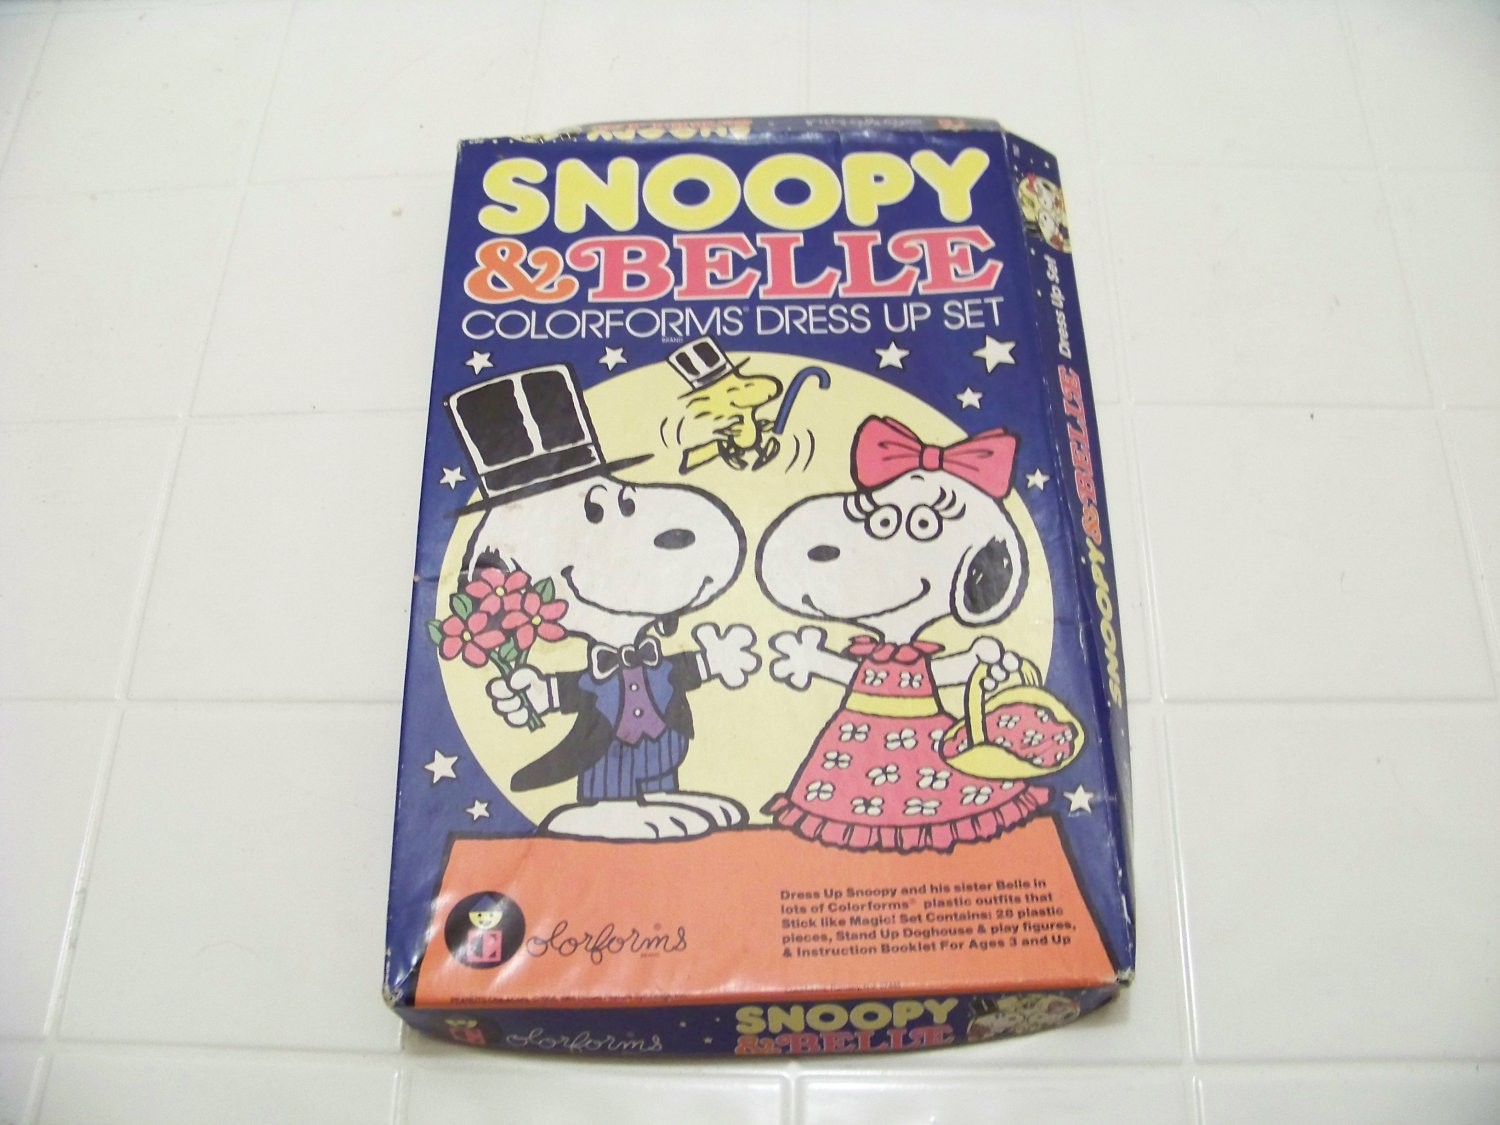 Snoopy & Belle colorforms dress up set vintage toy